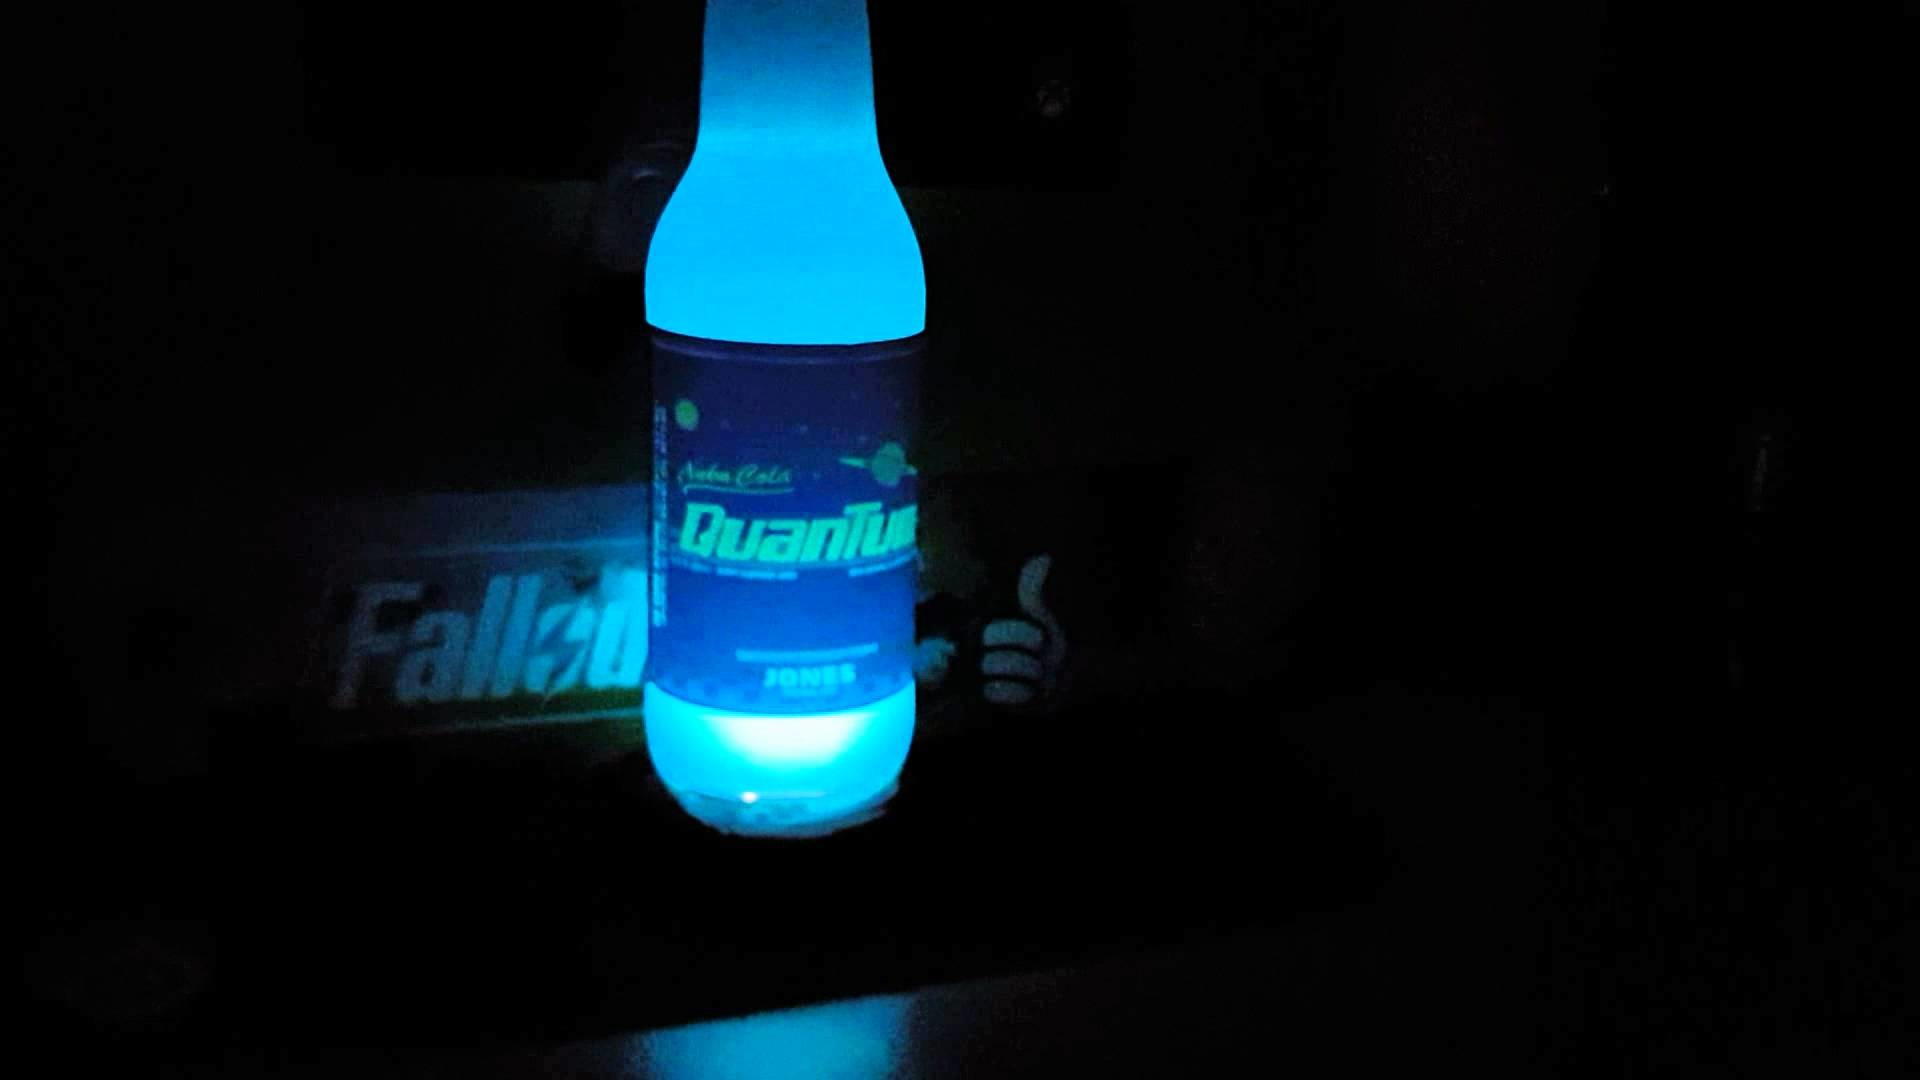 Res: 1920x1080, (NUKA COLA QUANTUM) Target Fallout 4 after dark glow COOL